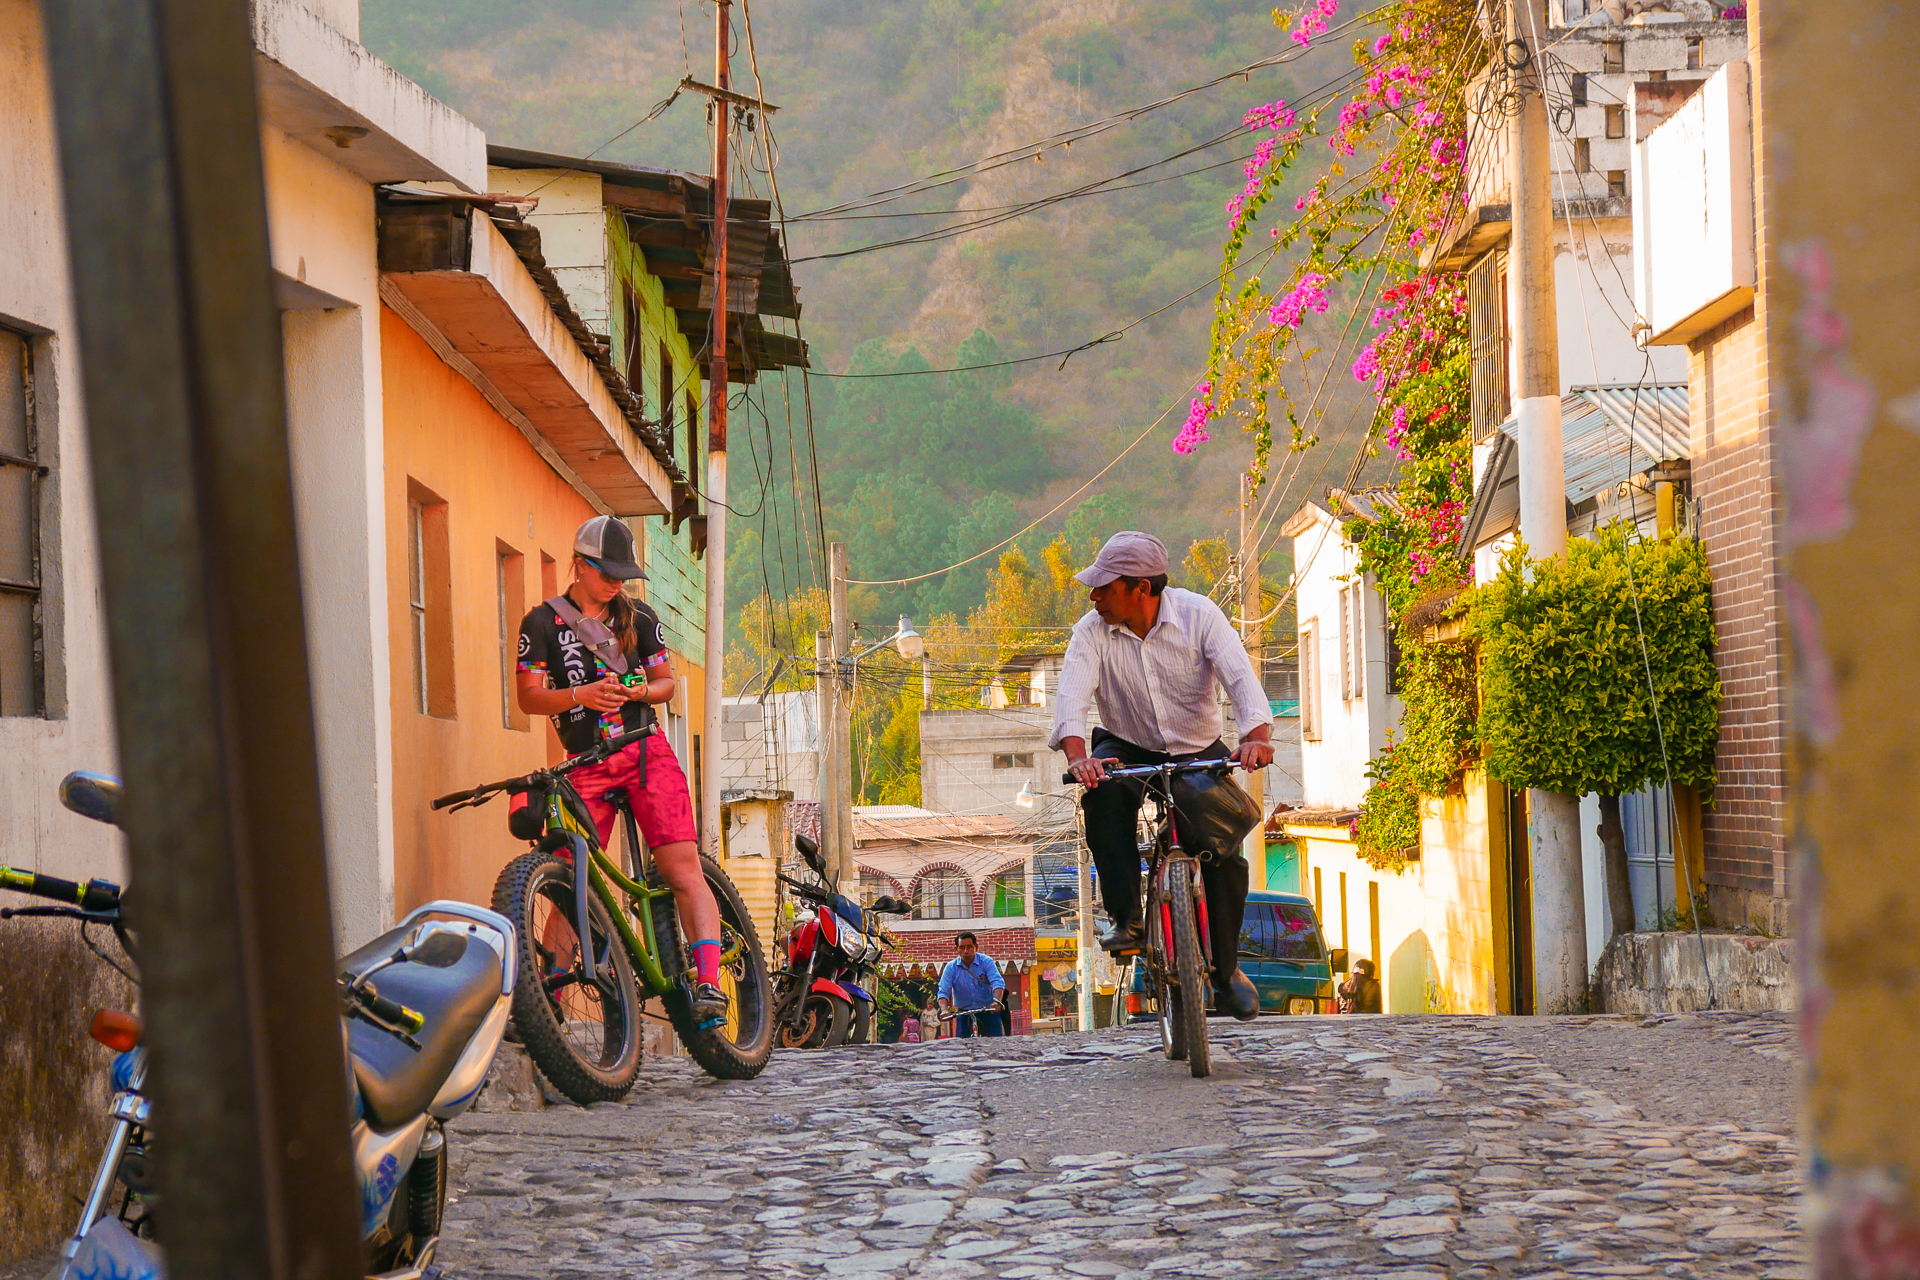 """Riding bikes for transportation and fun is part of the culture in Guatemala, regardless of age or class. Many people were curious about the """"bicigordas"""" - the fat bikes used on the volcanos expedition.  Rider: Elizabeth Sampy Location: Panajachel, Guatemala"""